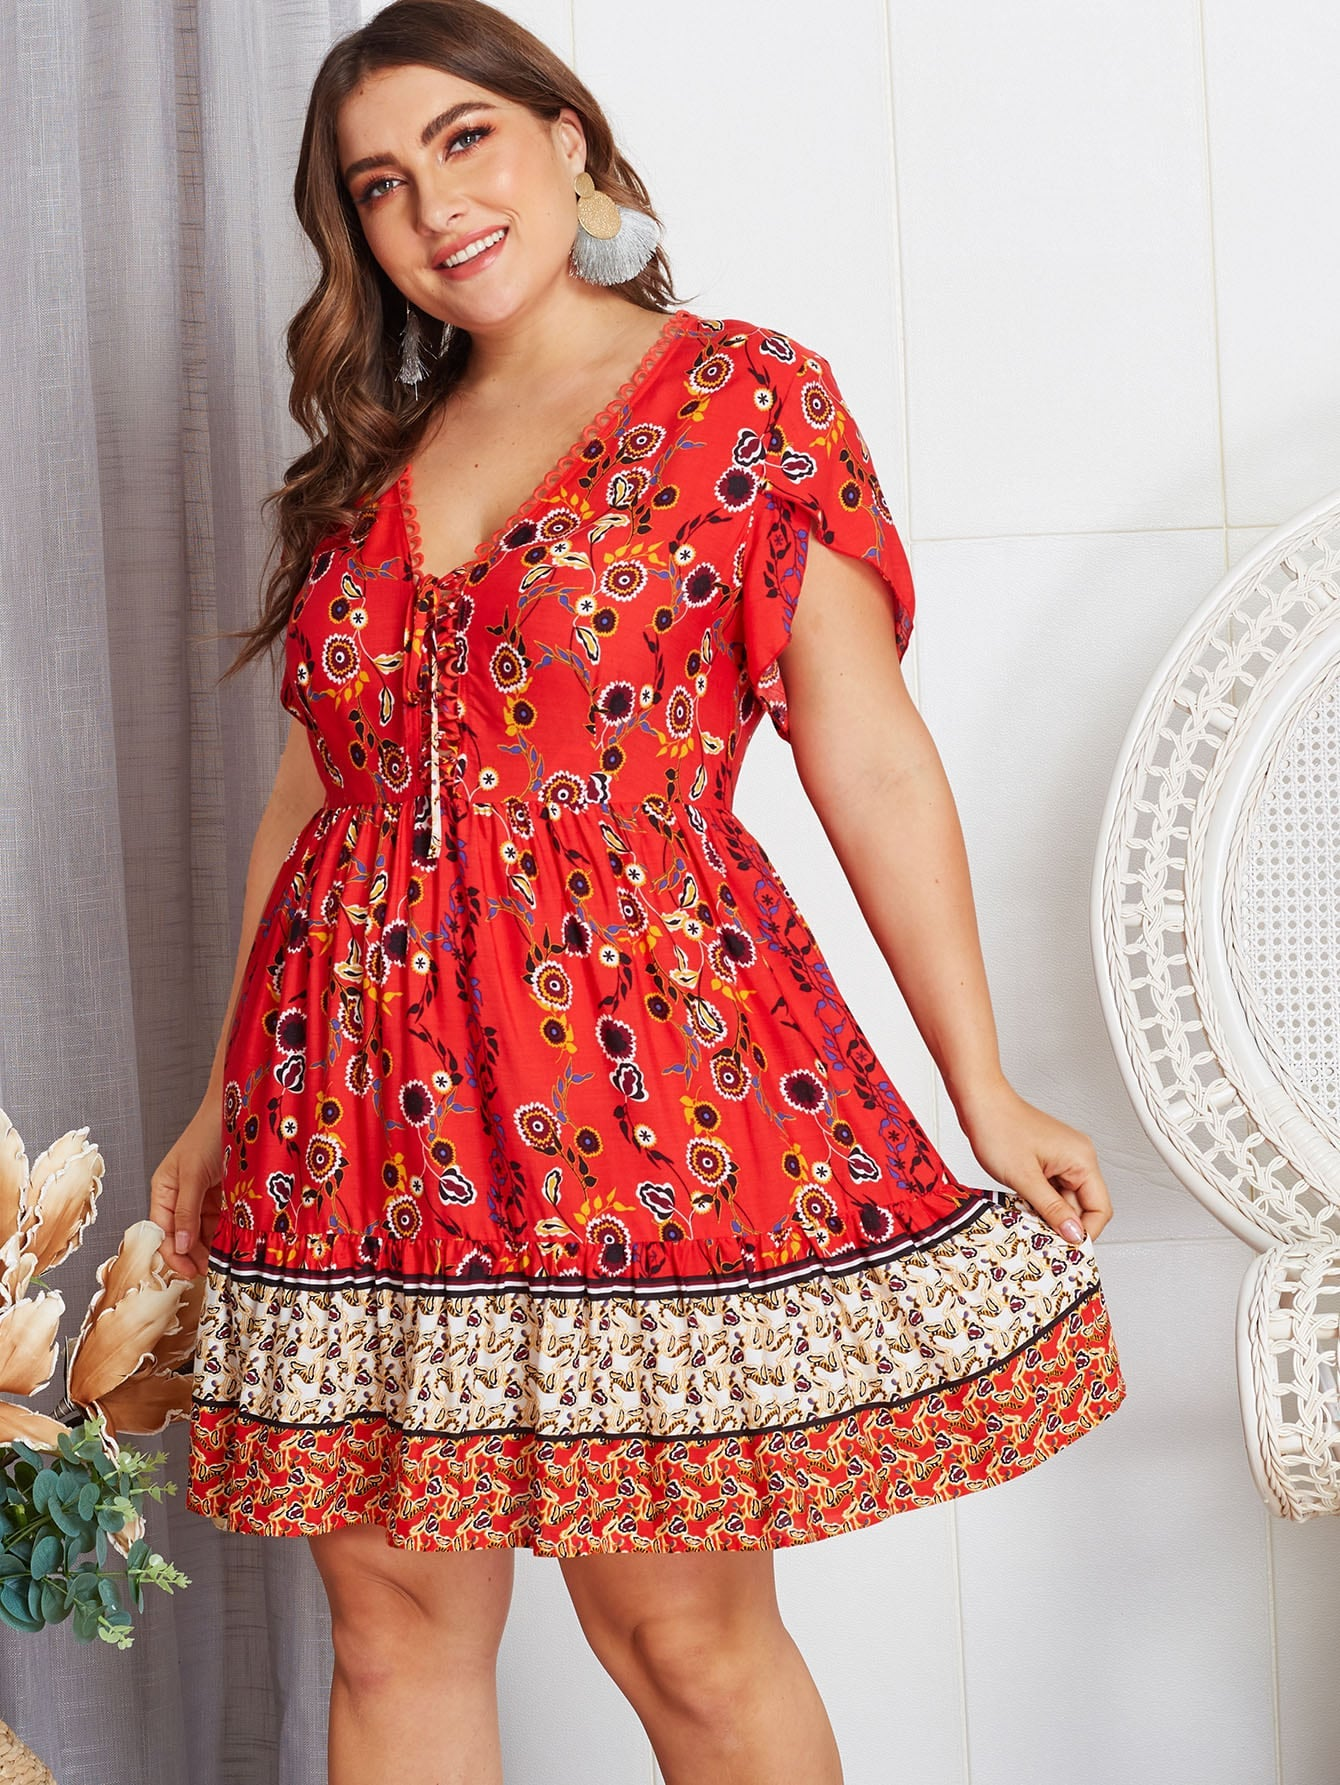 Elegant Plus Size Floral Knot Dress - BrandsGuru